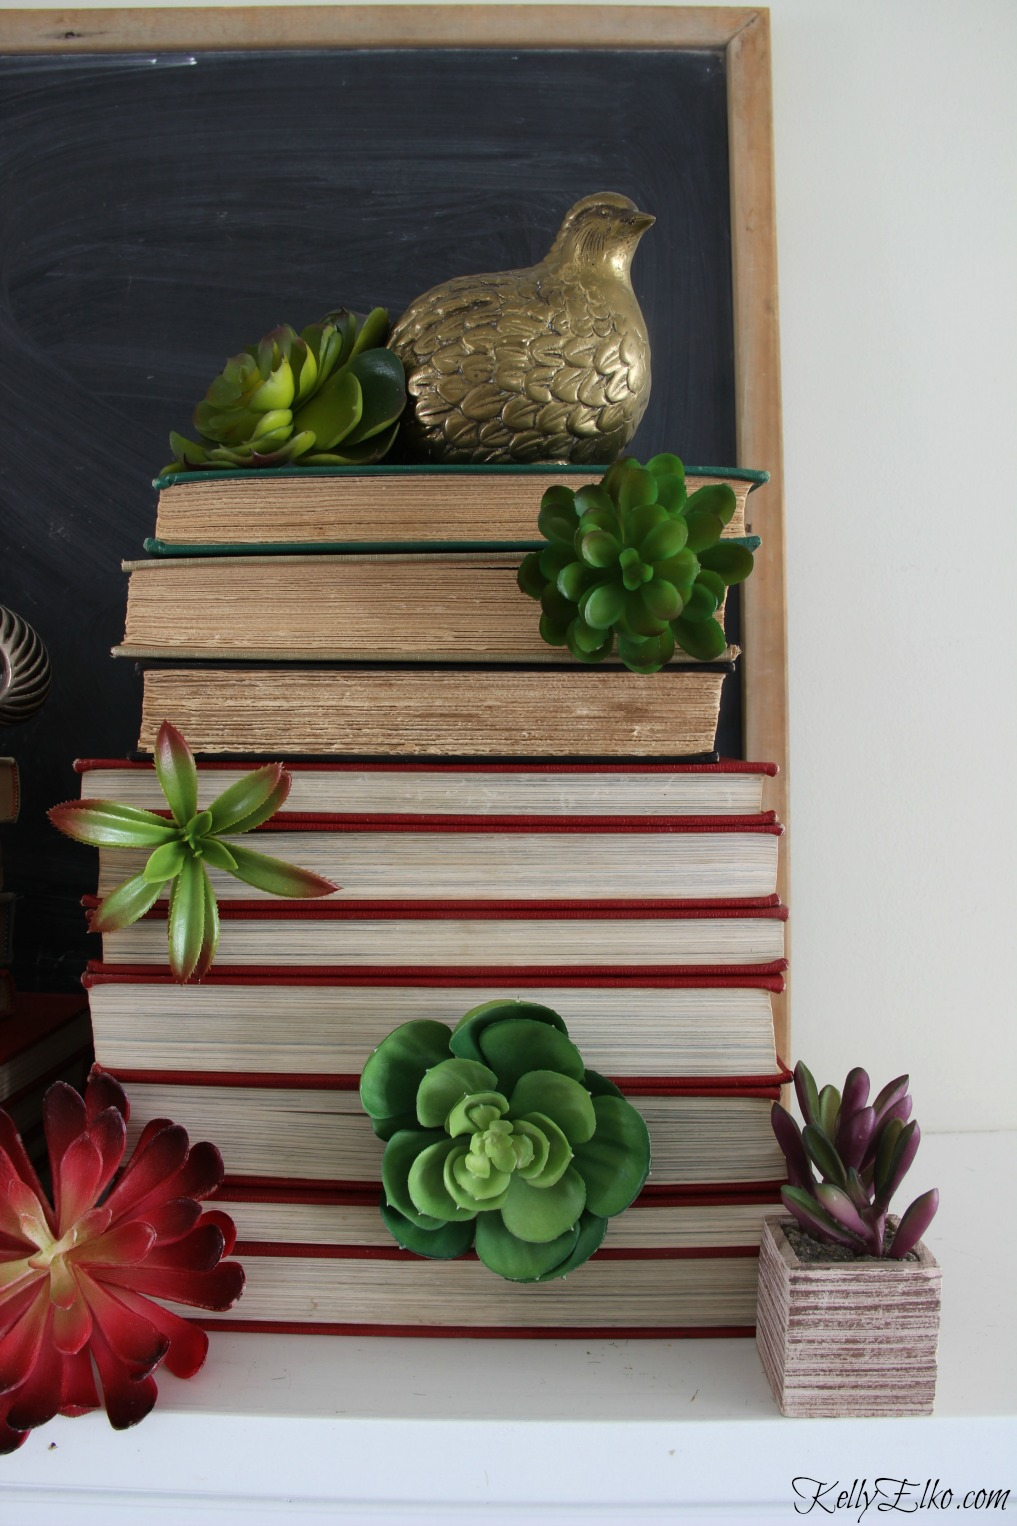 Book tower of succulents - this is a stunning mantel! kellyelko.com